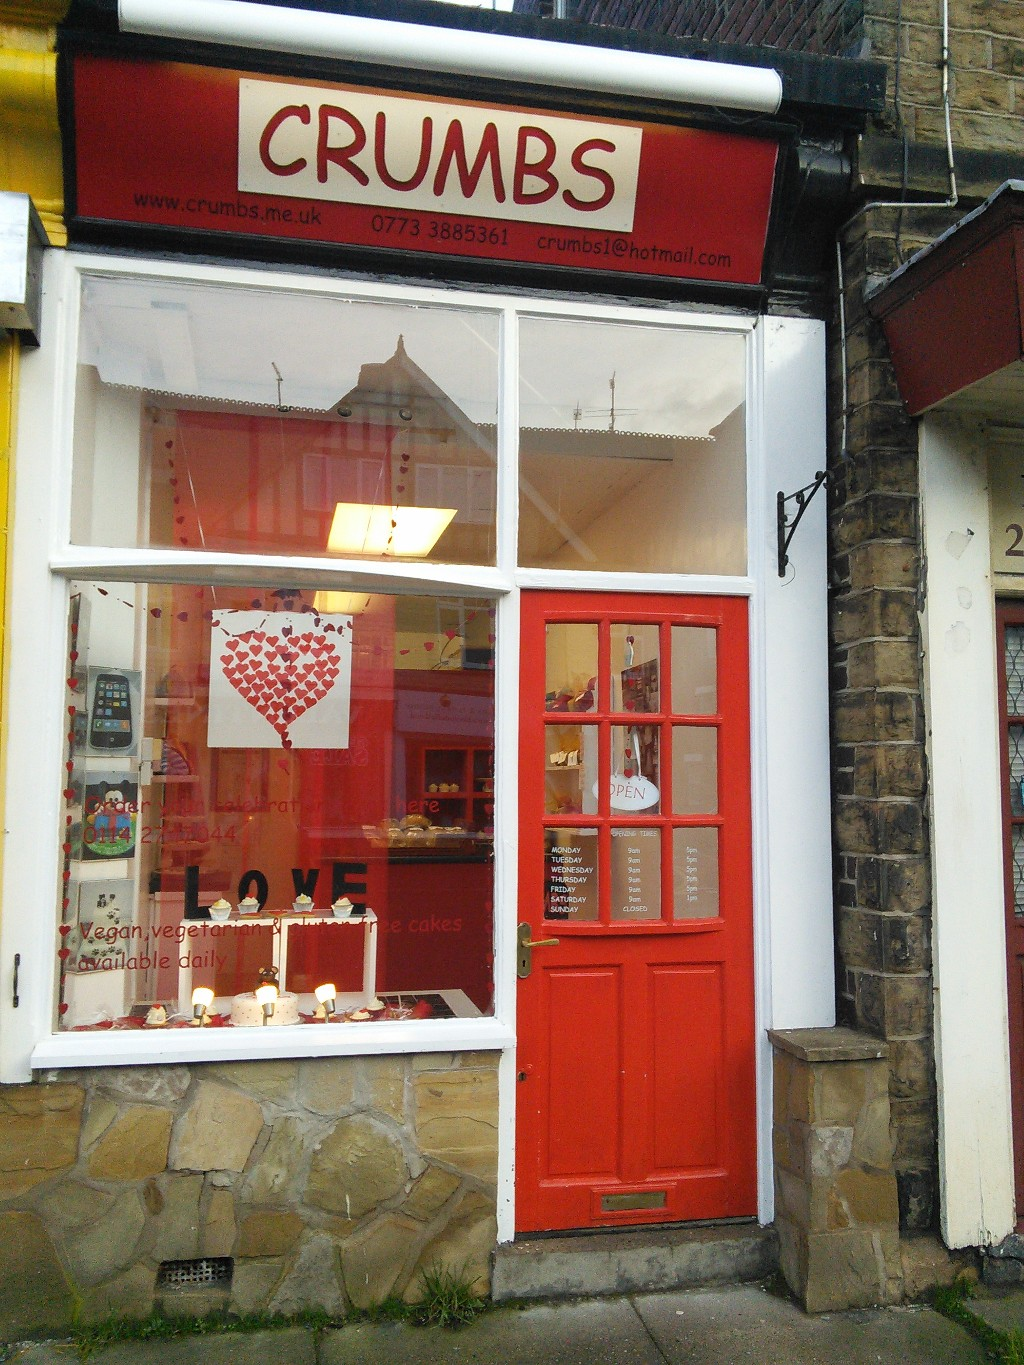 Crumbs Shopfront with Valentines Window Display